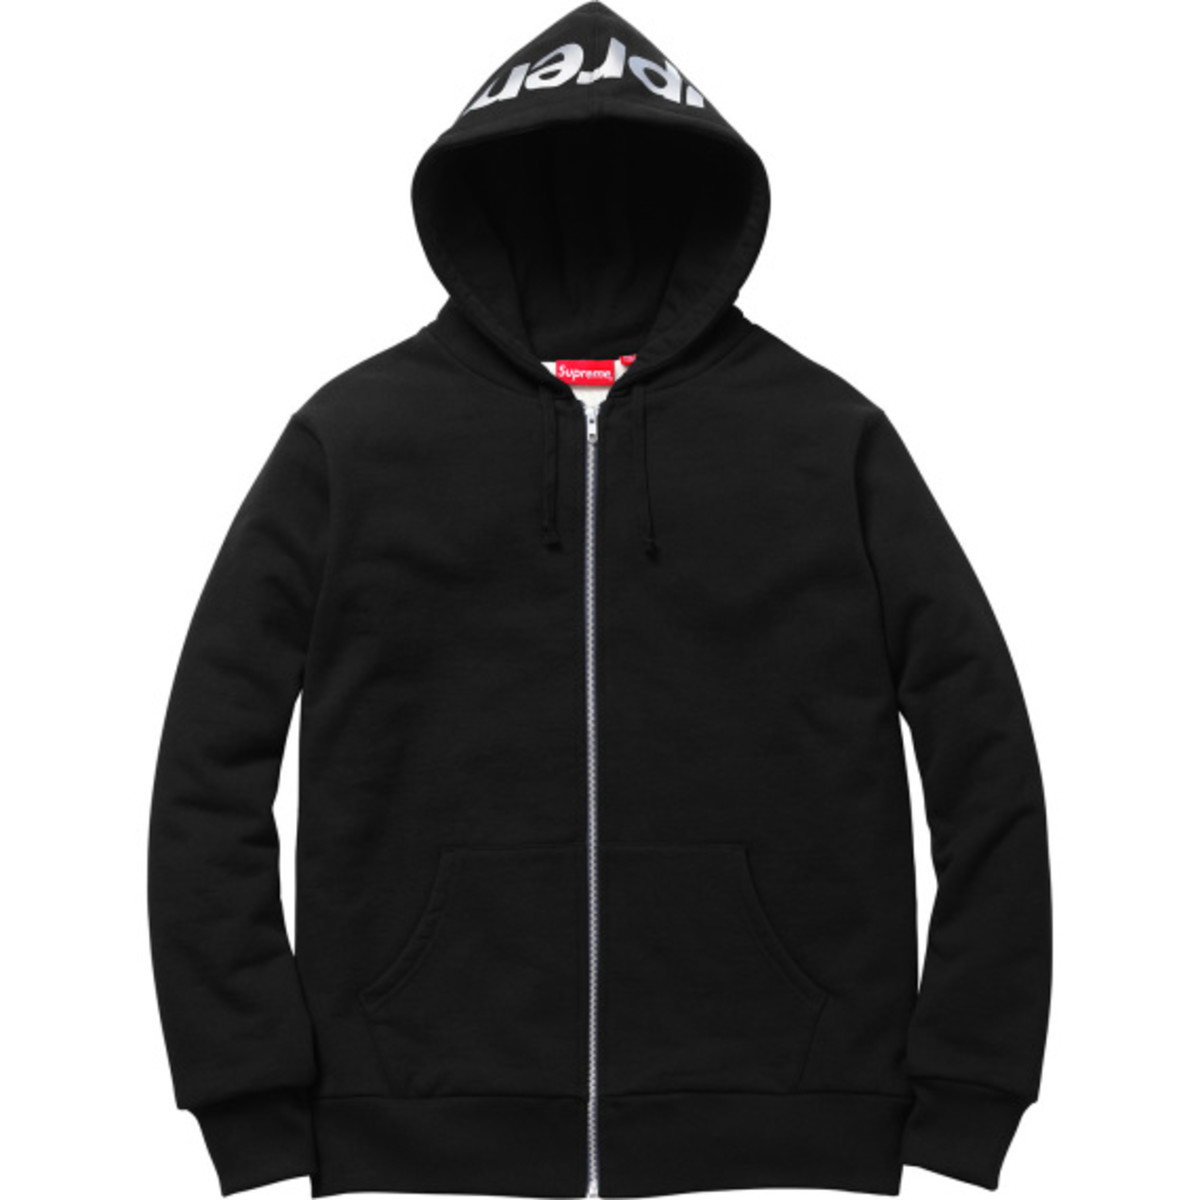 Supreme 3M Reflective Logo Thermal Zip-Up Hoodies | Available Now - 12